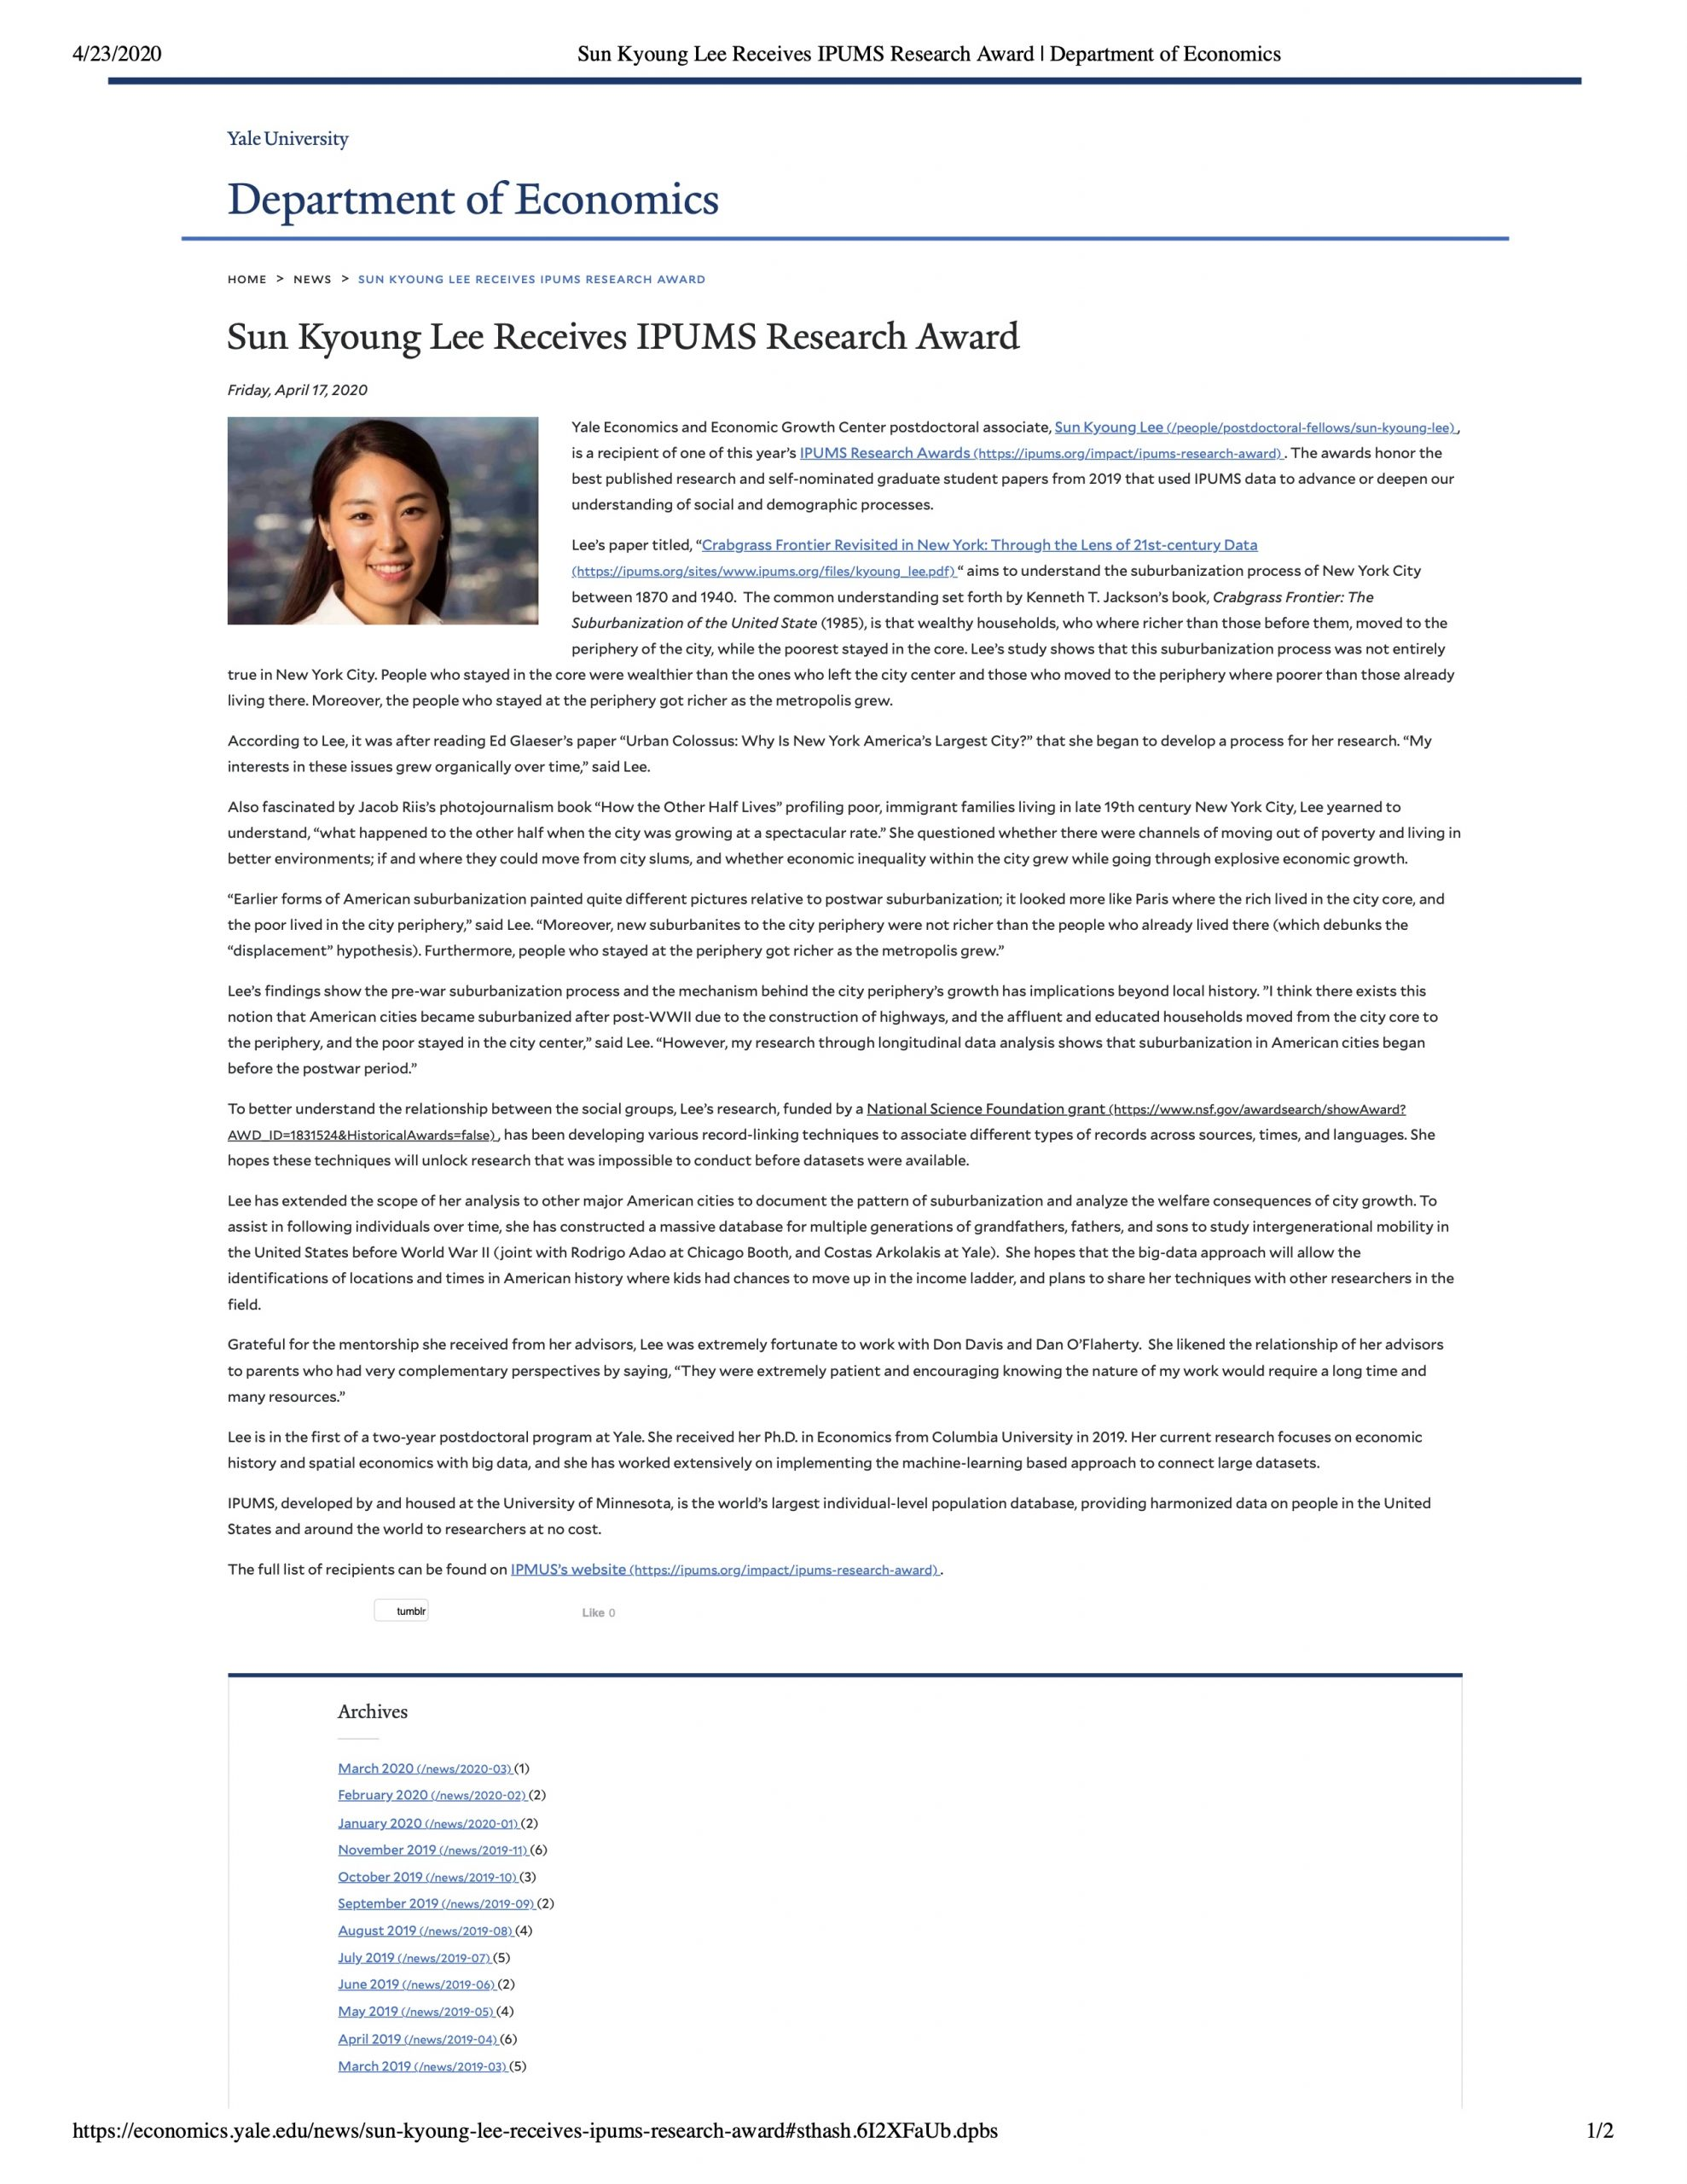 Sun Kyoung Lee Receives IPUMS Research Award | Department of Economics